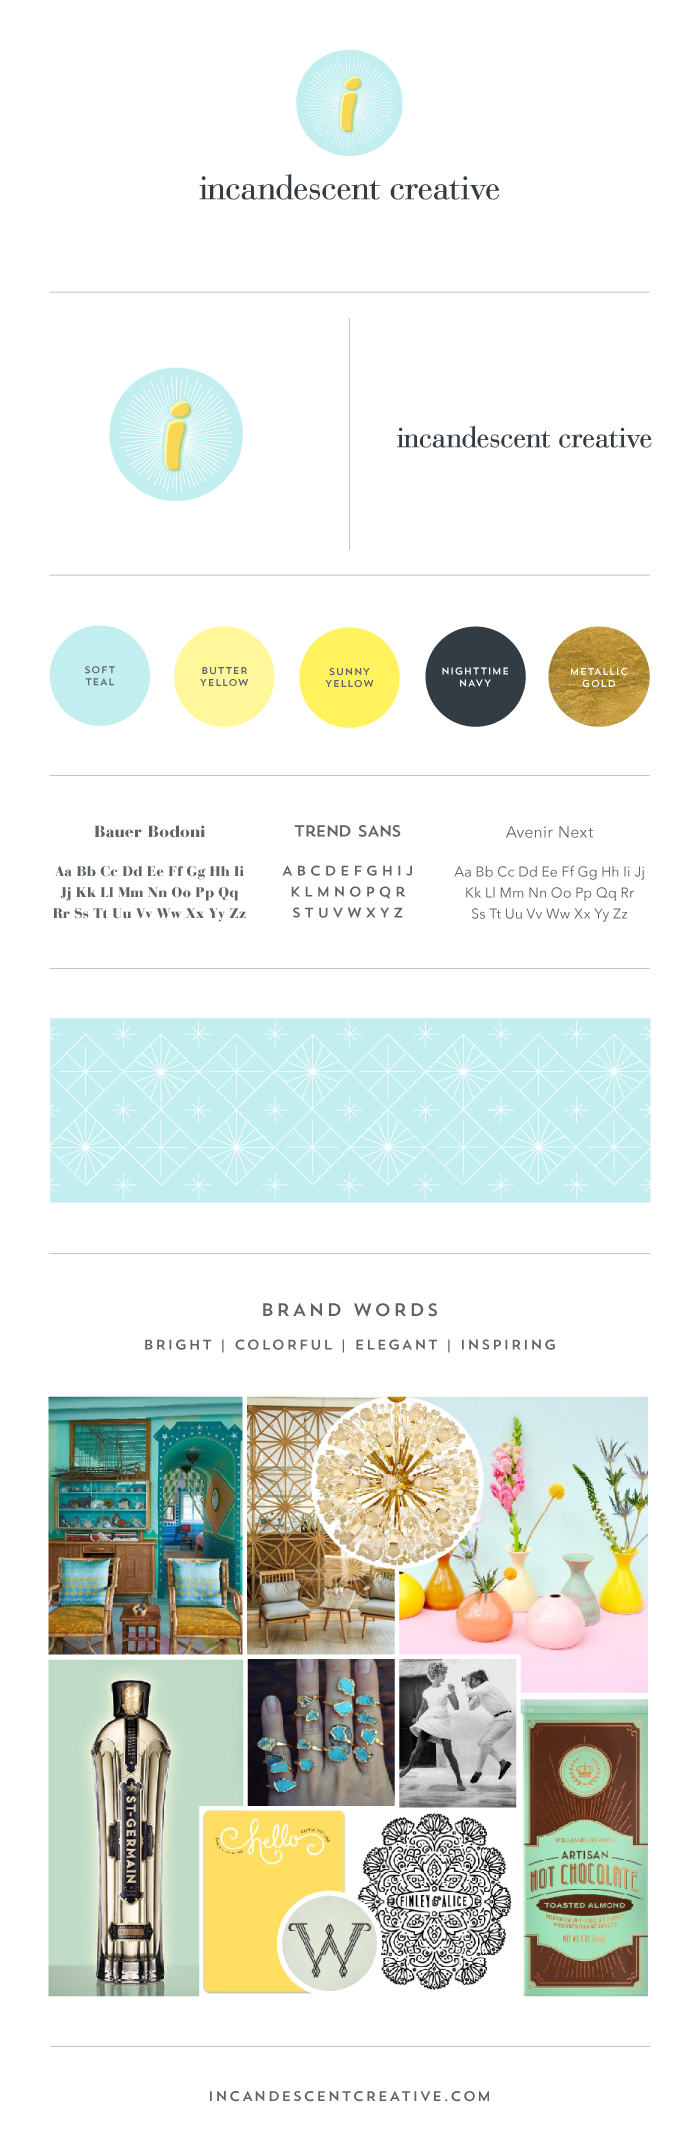 Brand style board for Incandescent Creative branding & design studio